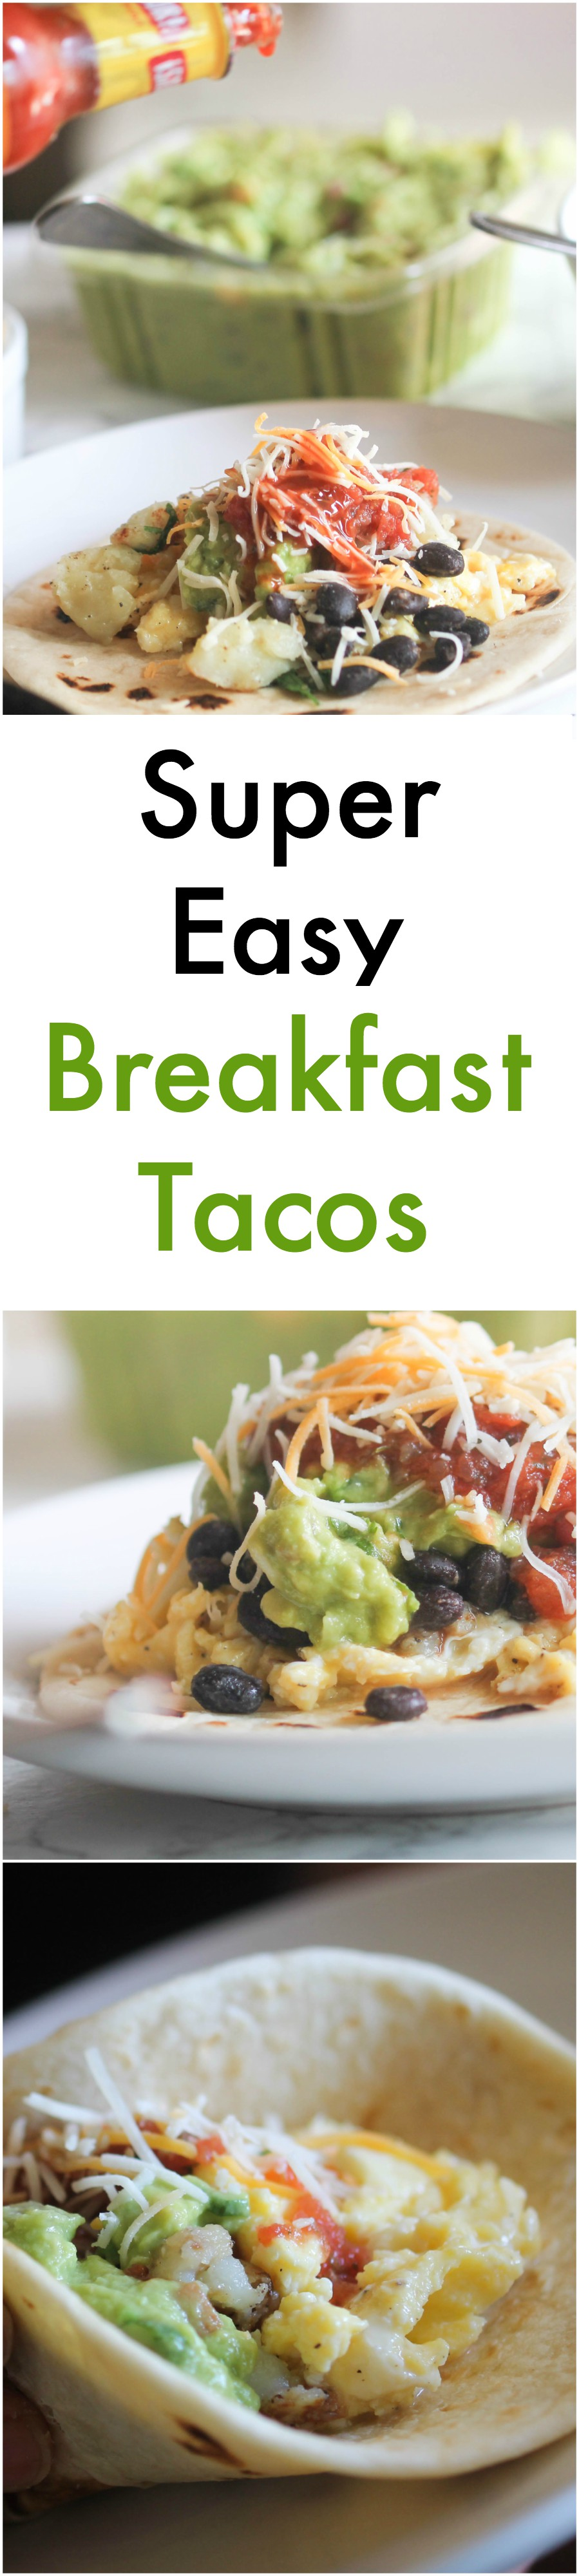 Super Easy Breakfast Taco combines all the basic breakfast taco essentials in 10 minutes or less. It is great for quick breakfast or for feeding a large crowd. Lots of options for vegetarians, vegans, and gluten-free lifestyle.